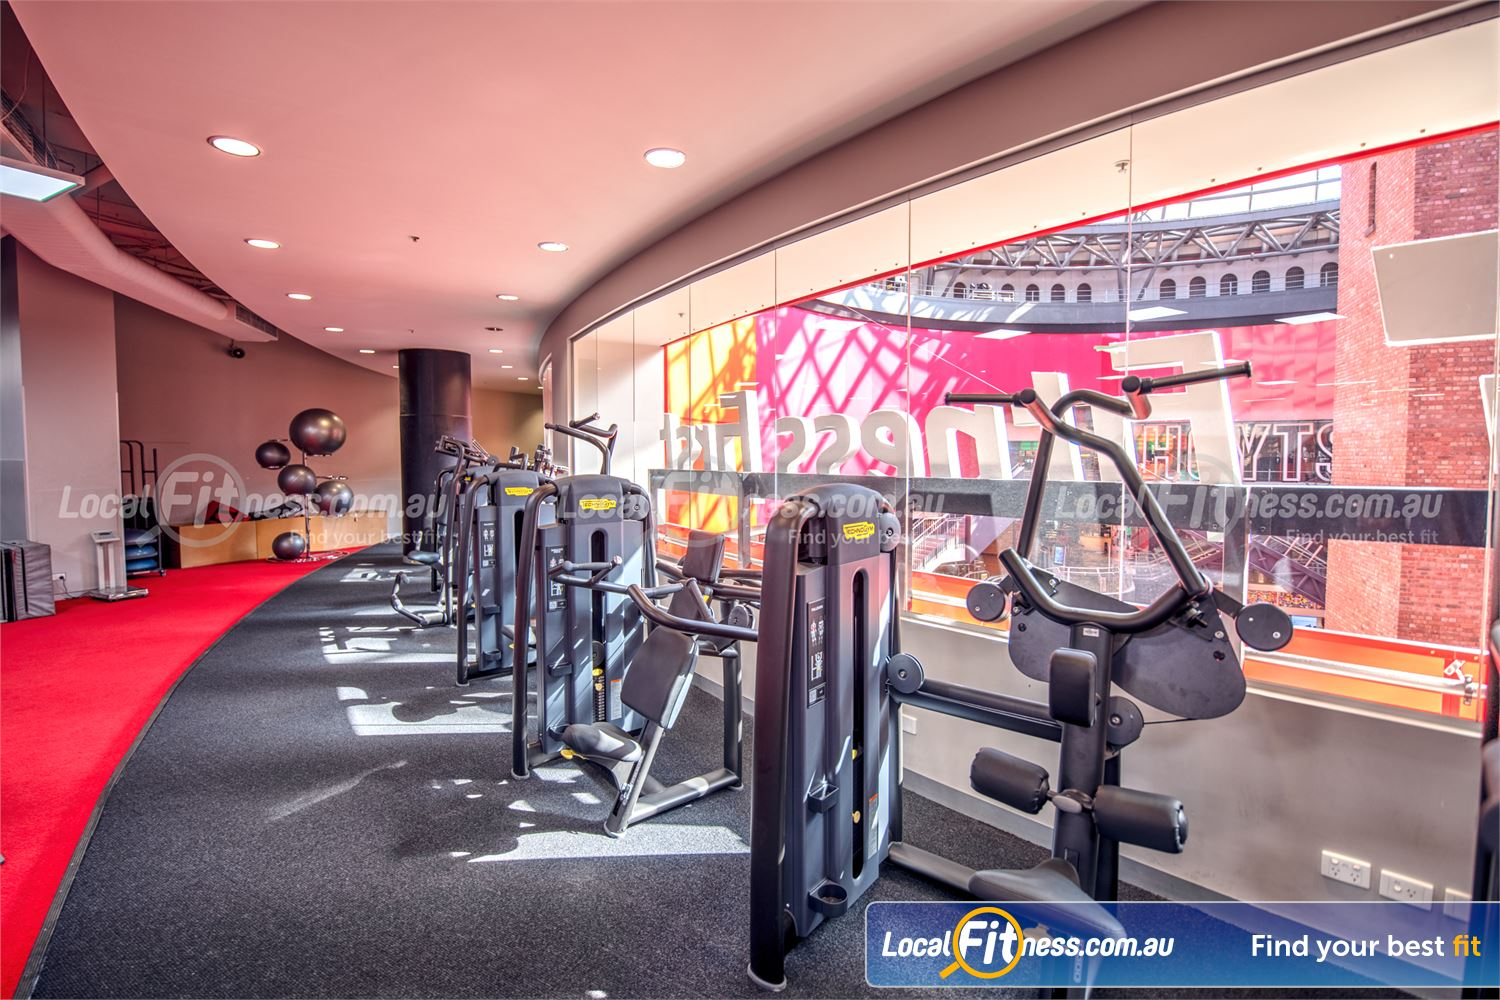 Fitness First Melbourne Central Platinum Near East Melbourne Our Melbourne gym overlooks the iconic Melbourne Central cone.